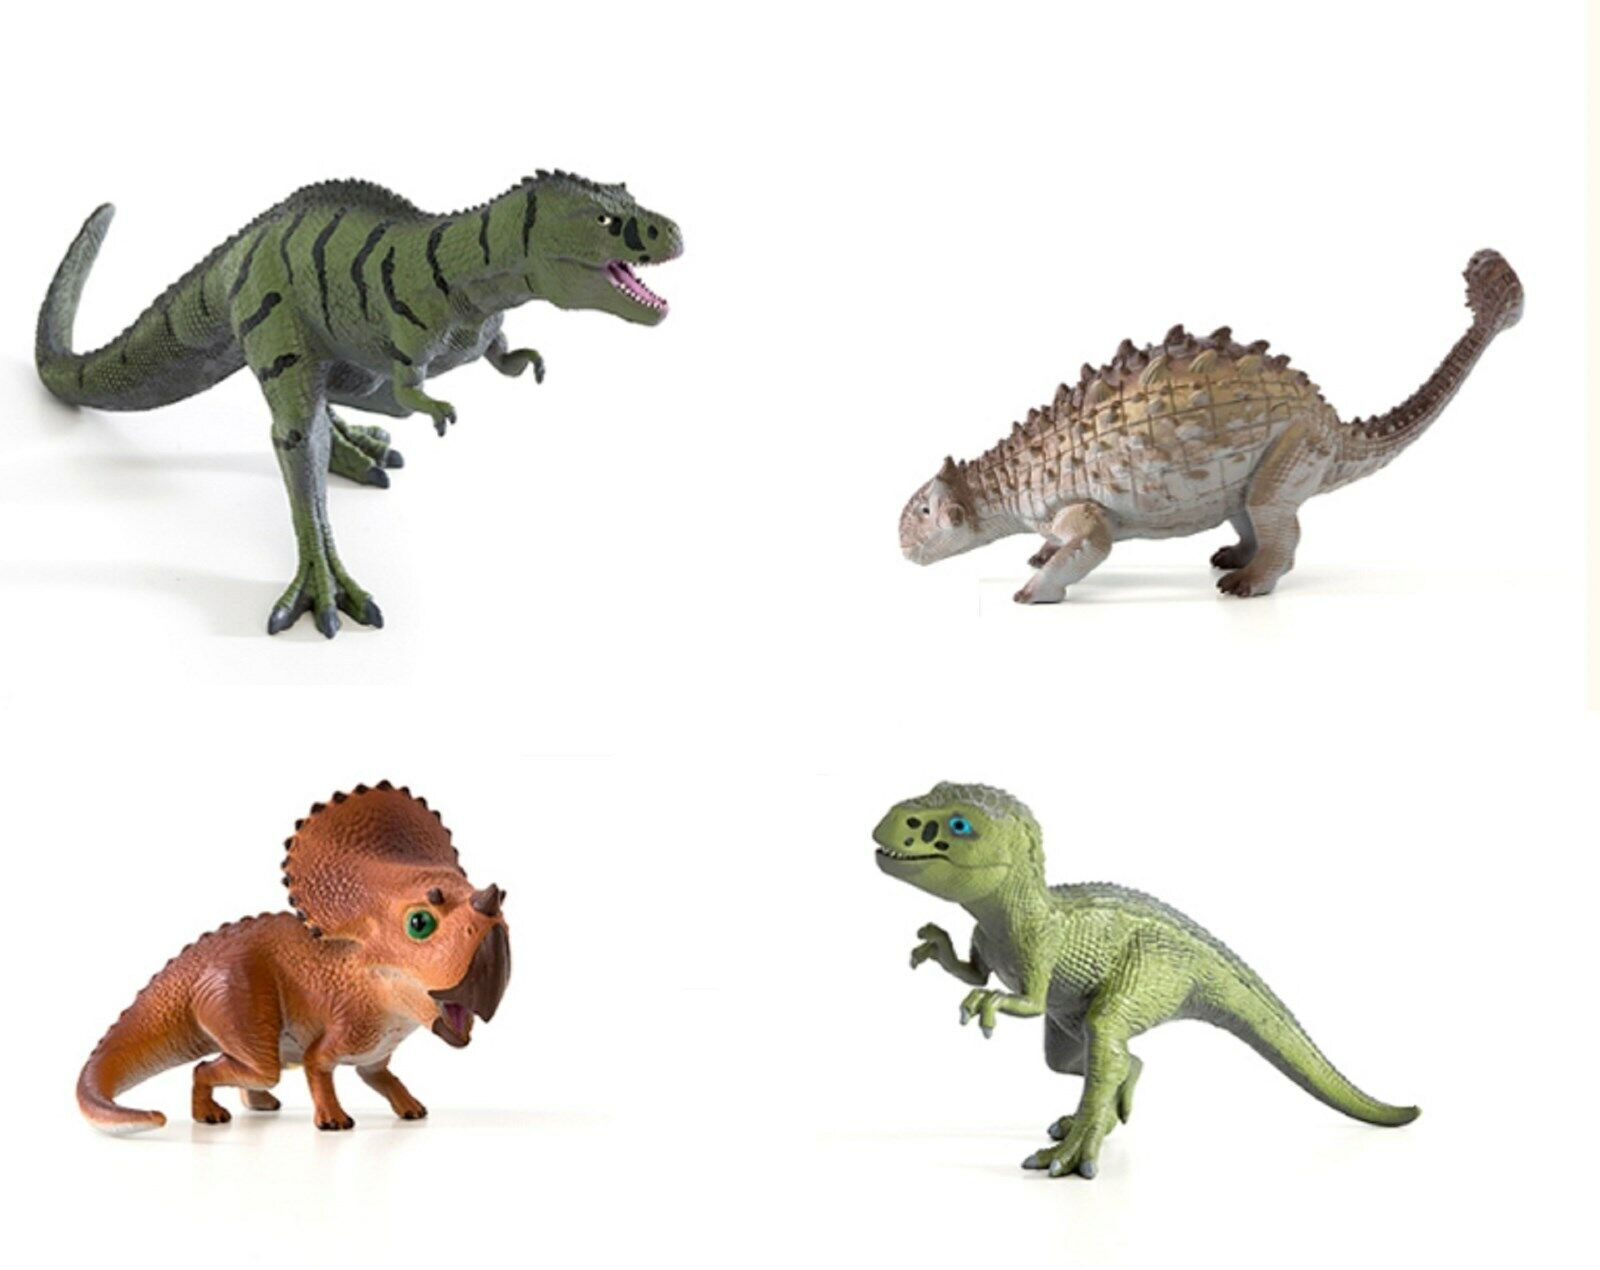 Toy Tron Dino King 3D Animation Animation Animation Journey to Fire Mountain Dinosaur Figures Toy cc802f